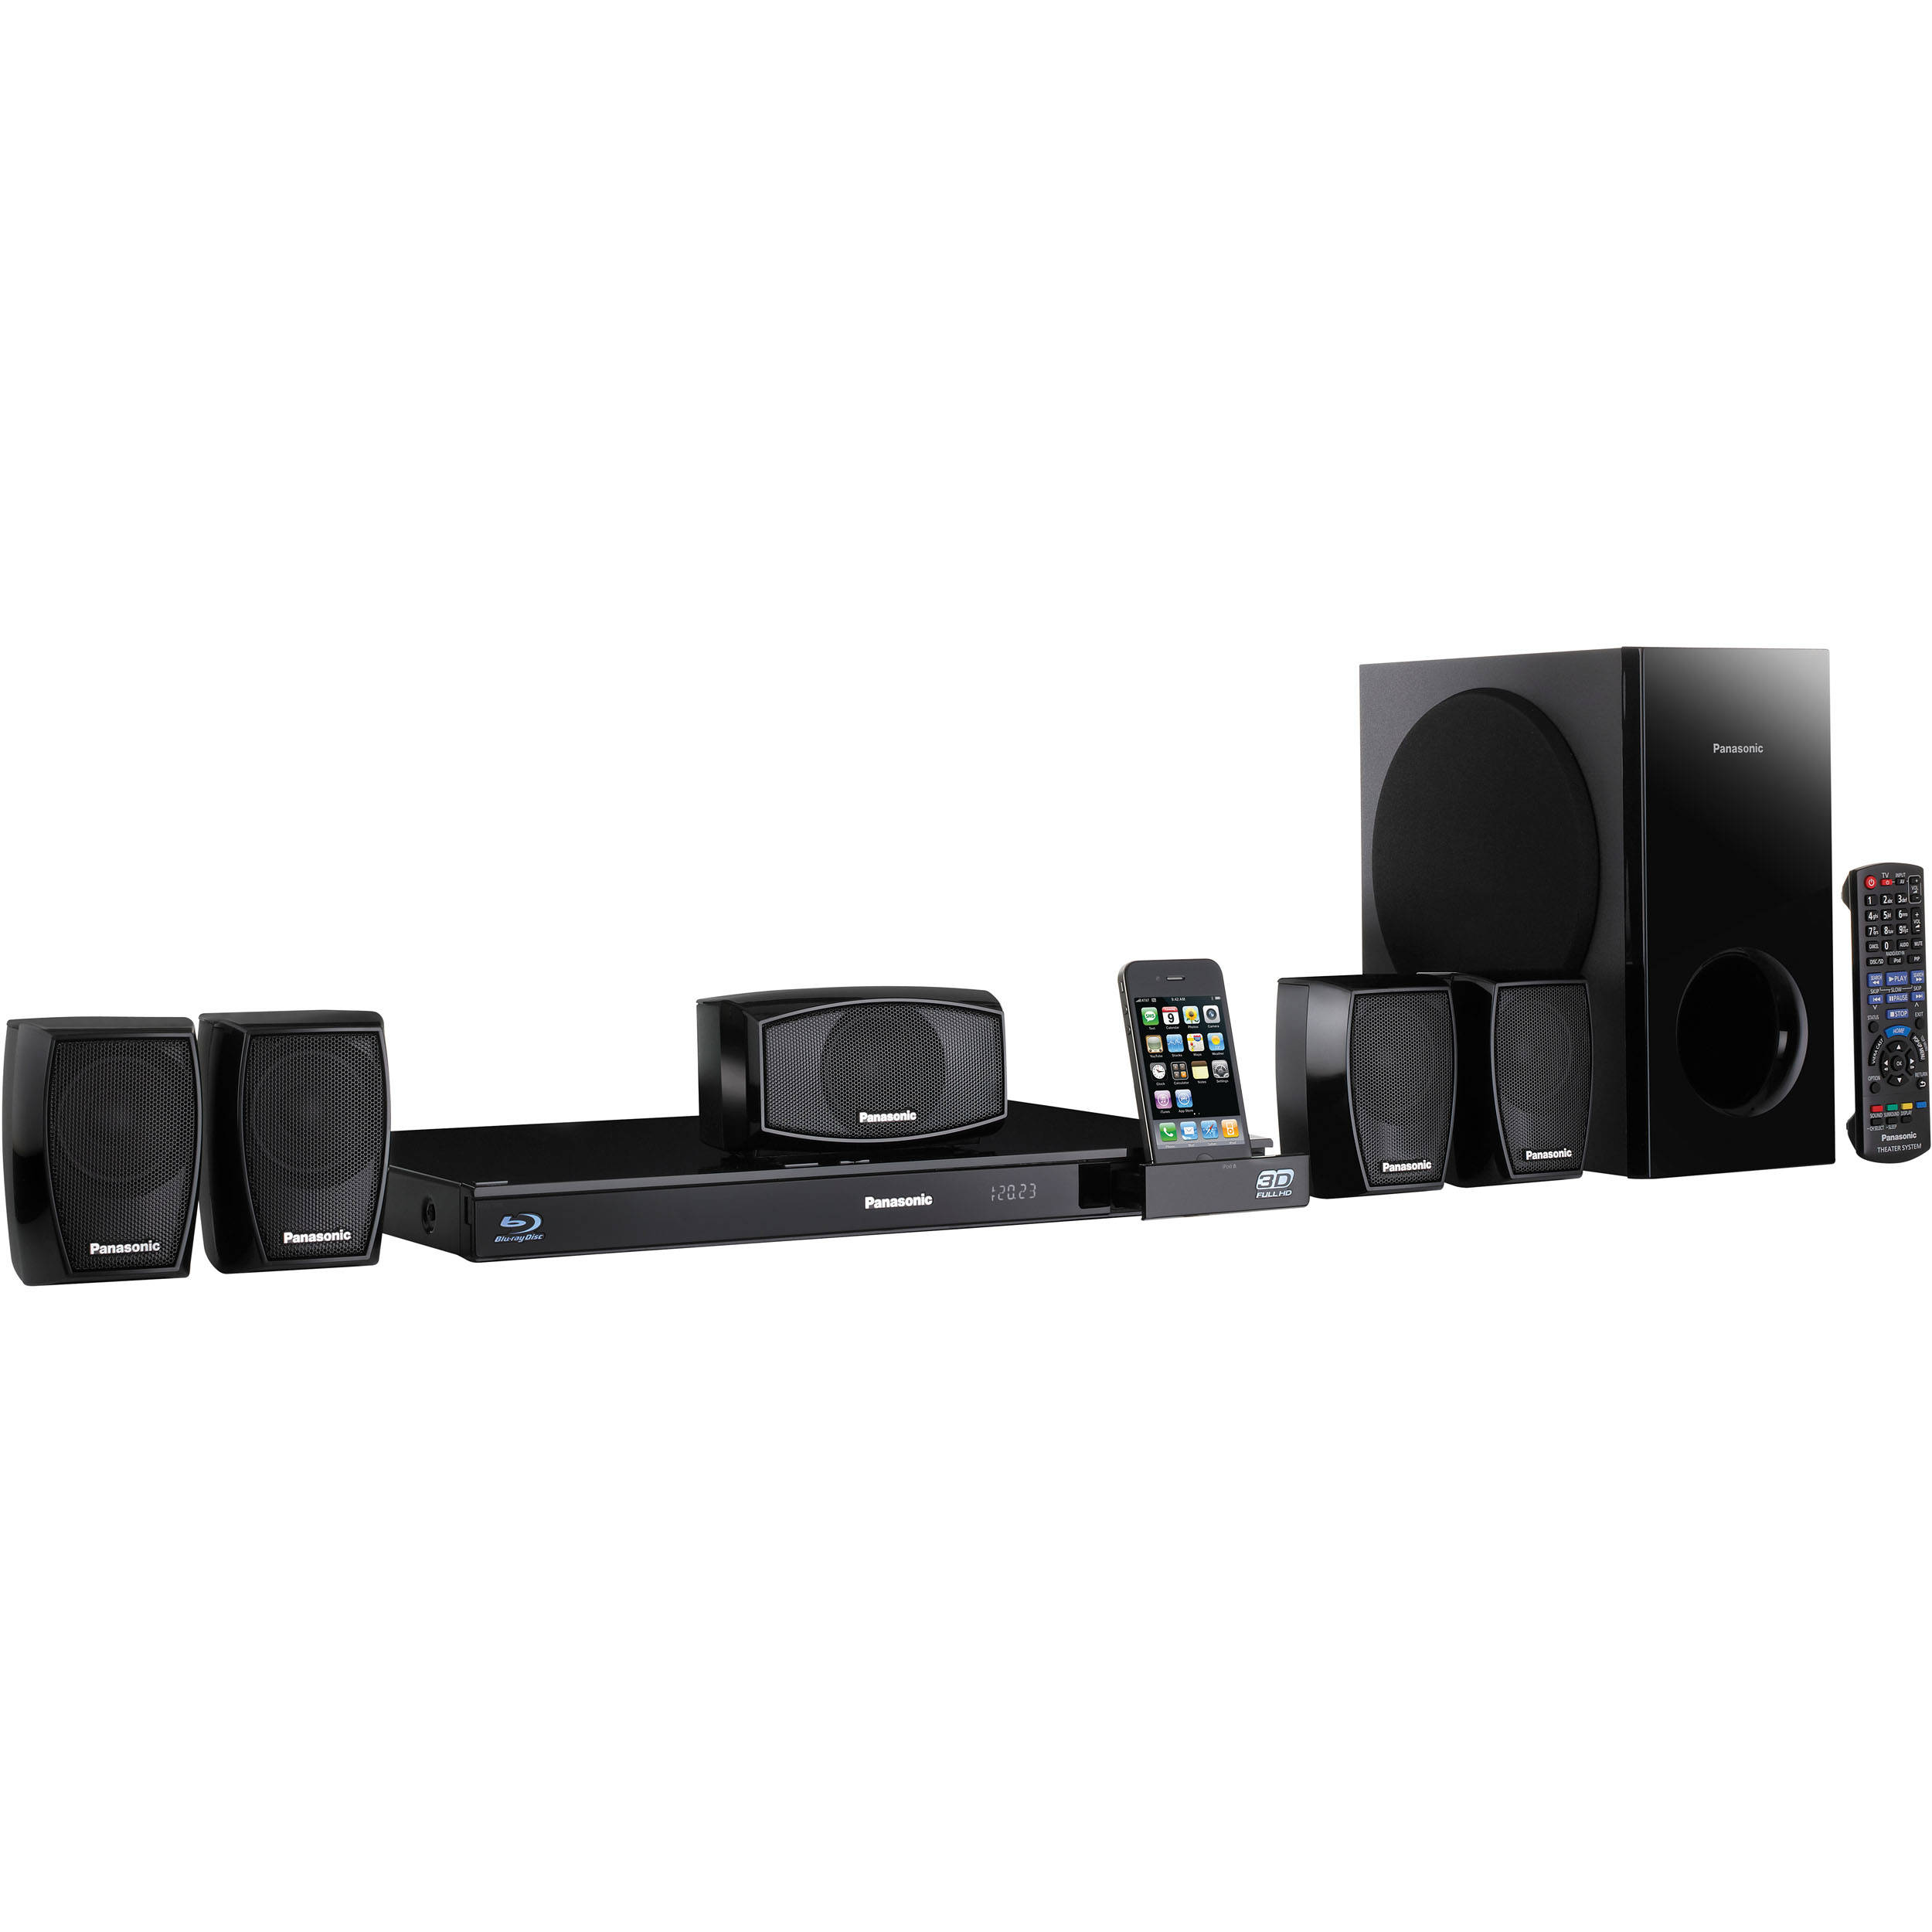 panasonic sc btt270 full hd 3d blu ray home theater sc btt270. Black Bedroom Furniture Sets. Home Design Ideas